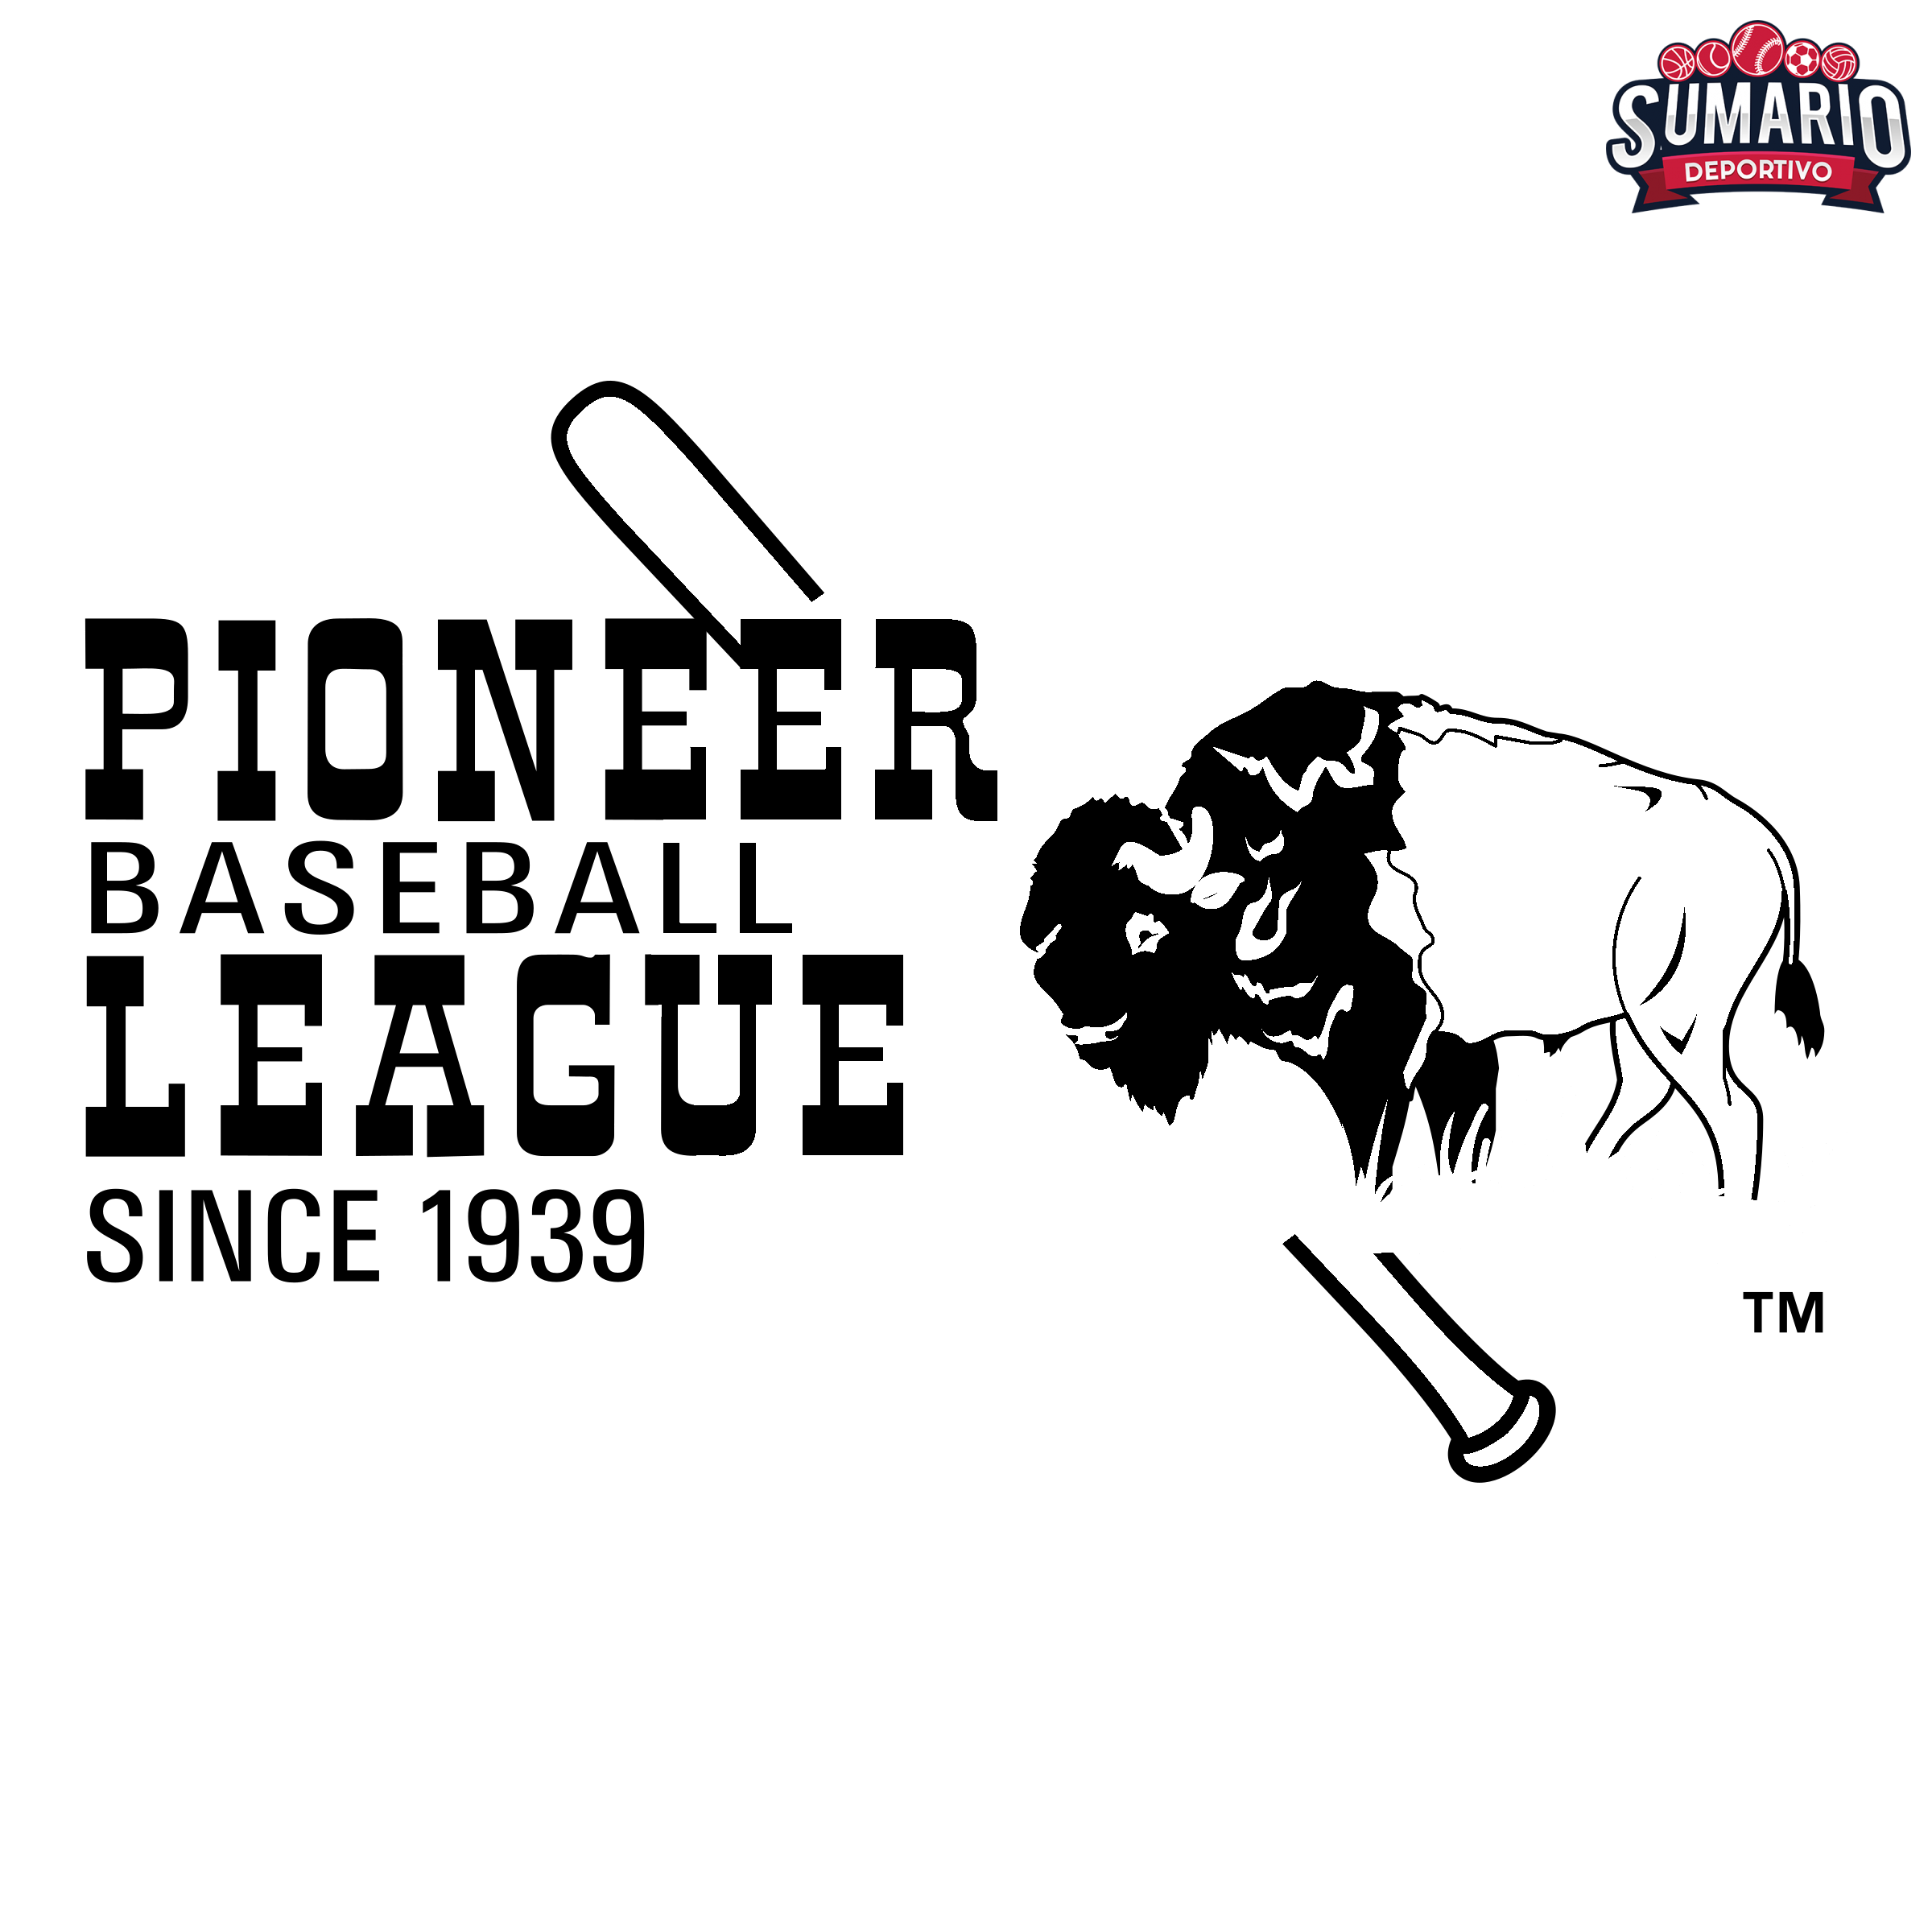 pioneer-league-1-logo-black-and-white